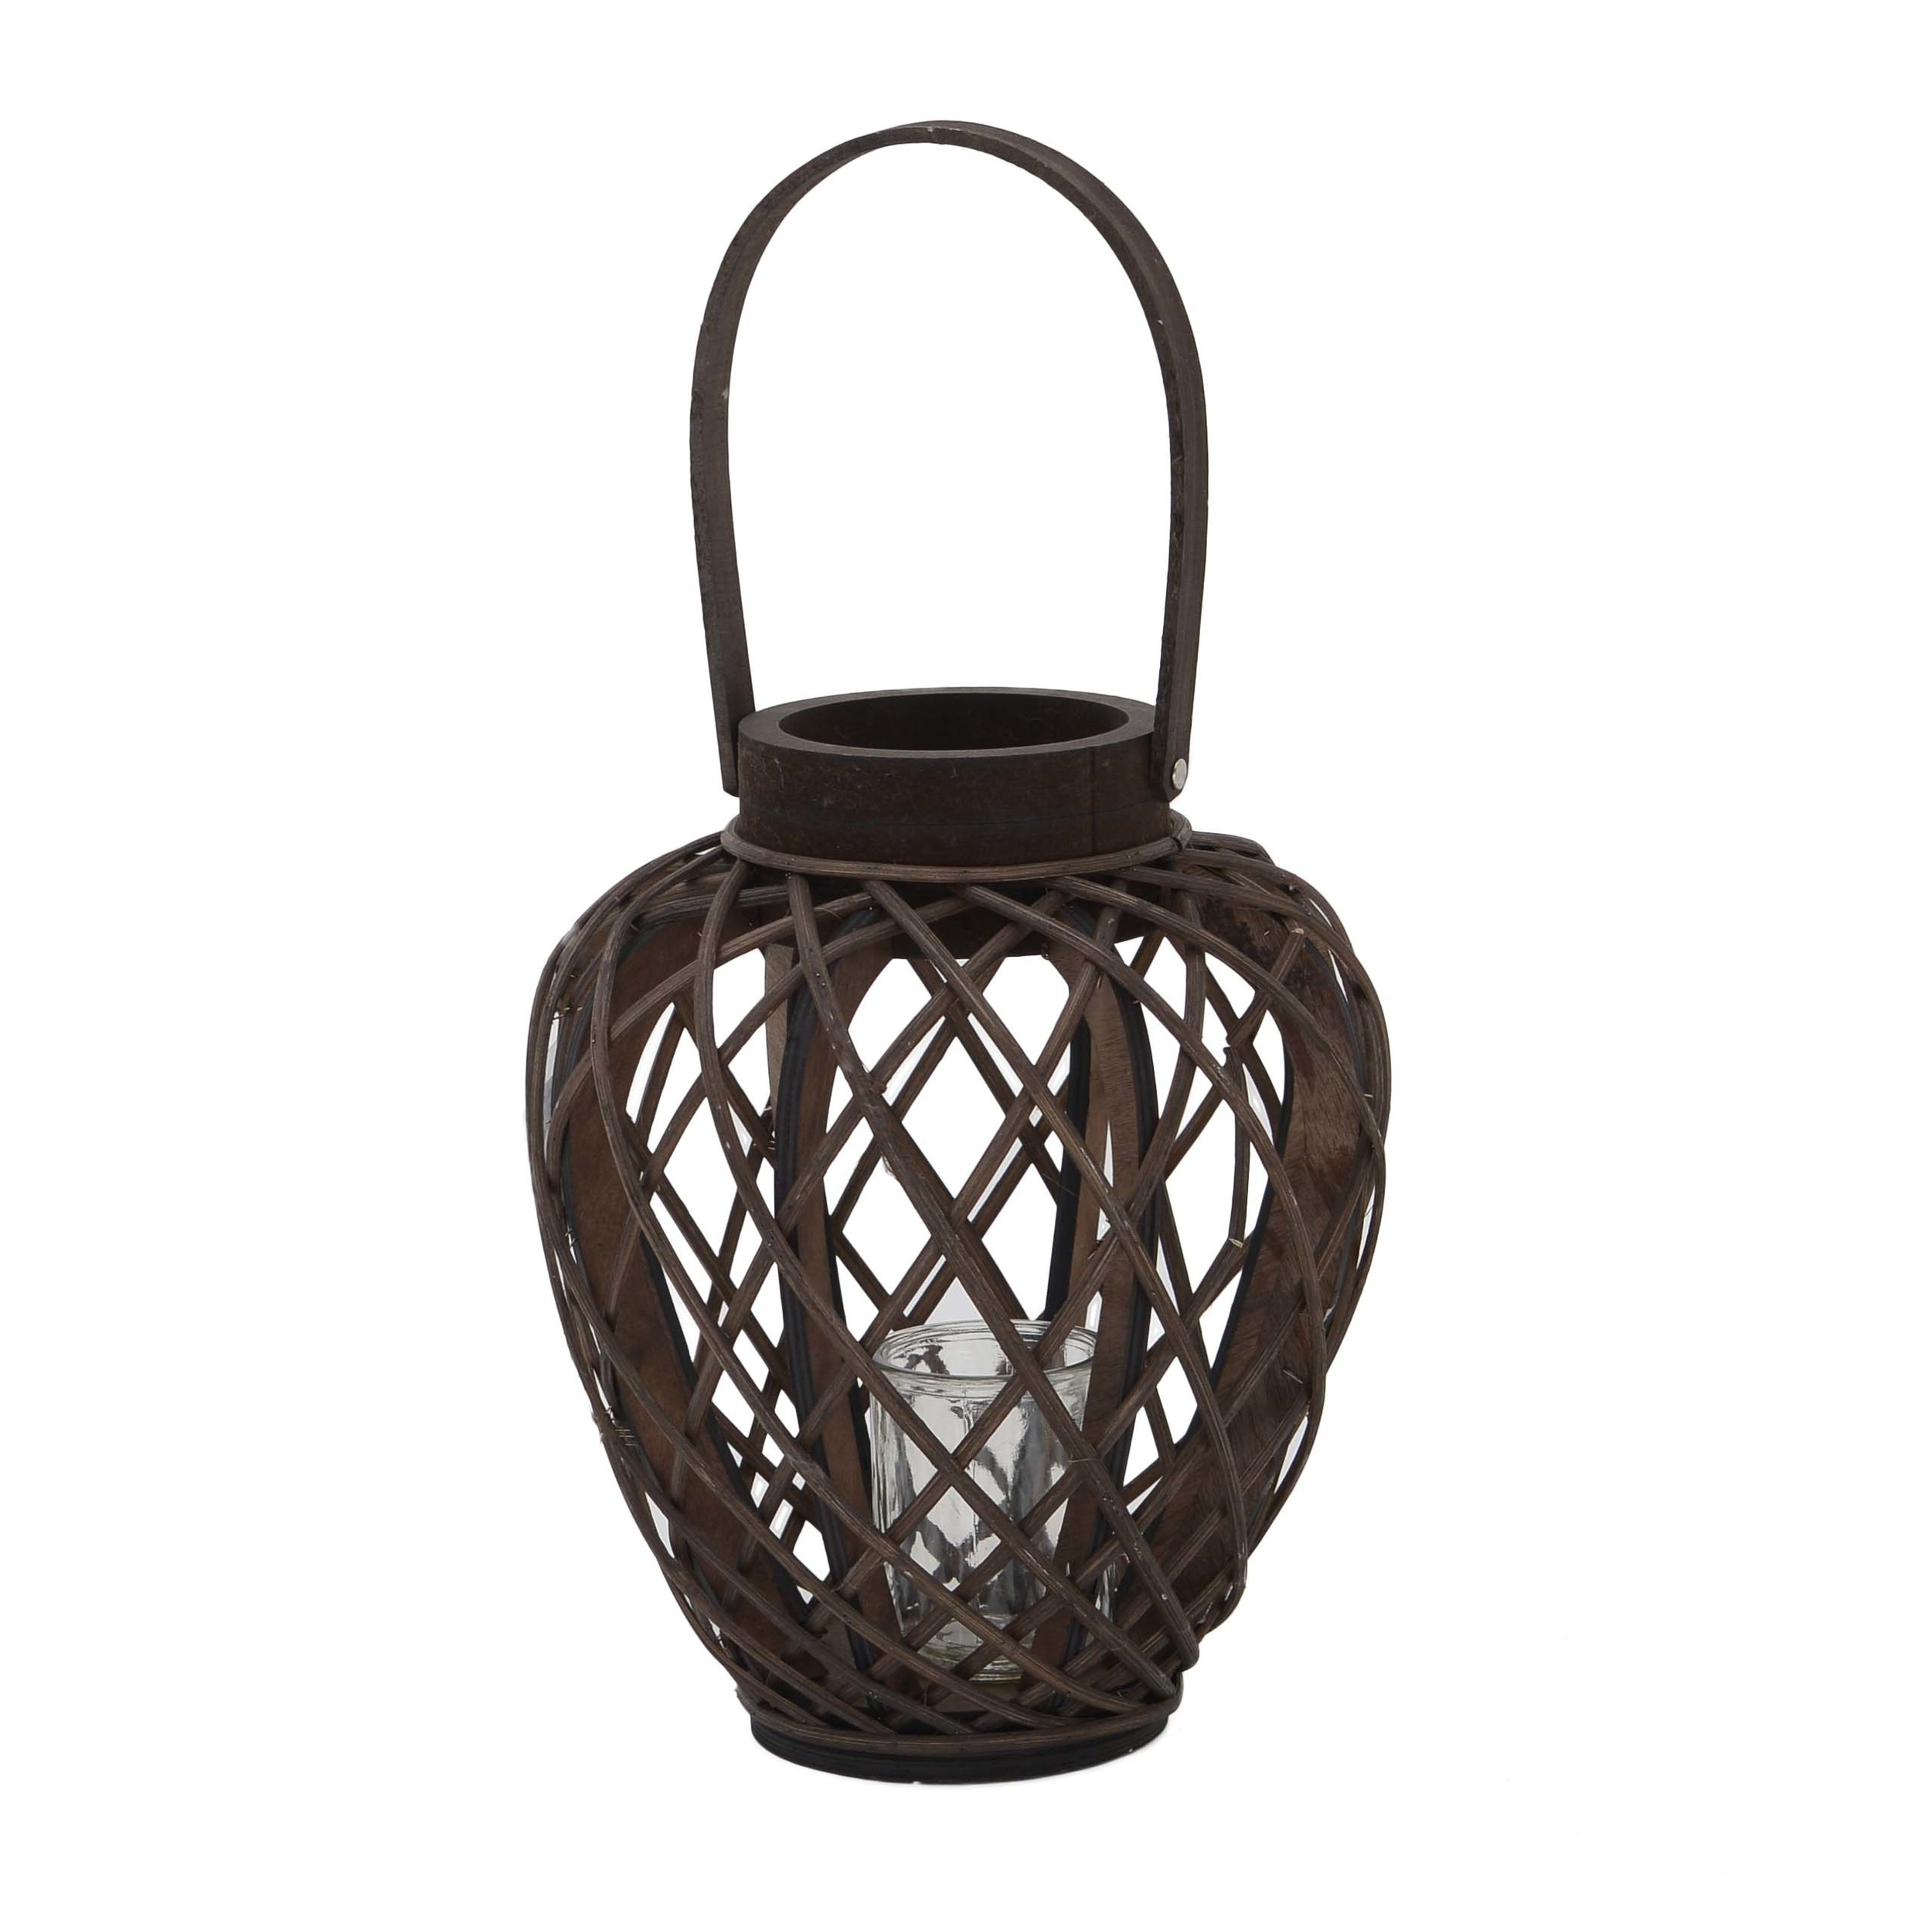 €34 WILLOW LANTERN IN BROWN COLOR 28X28X34/53